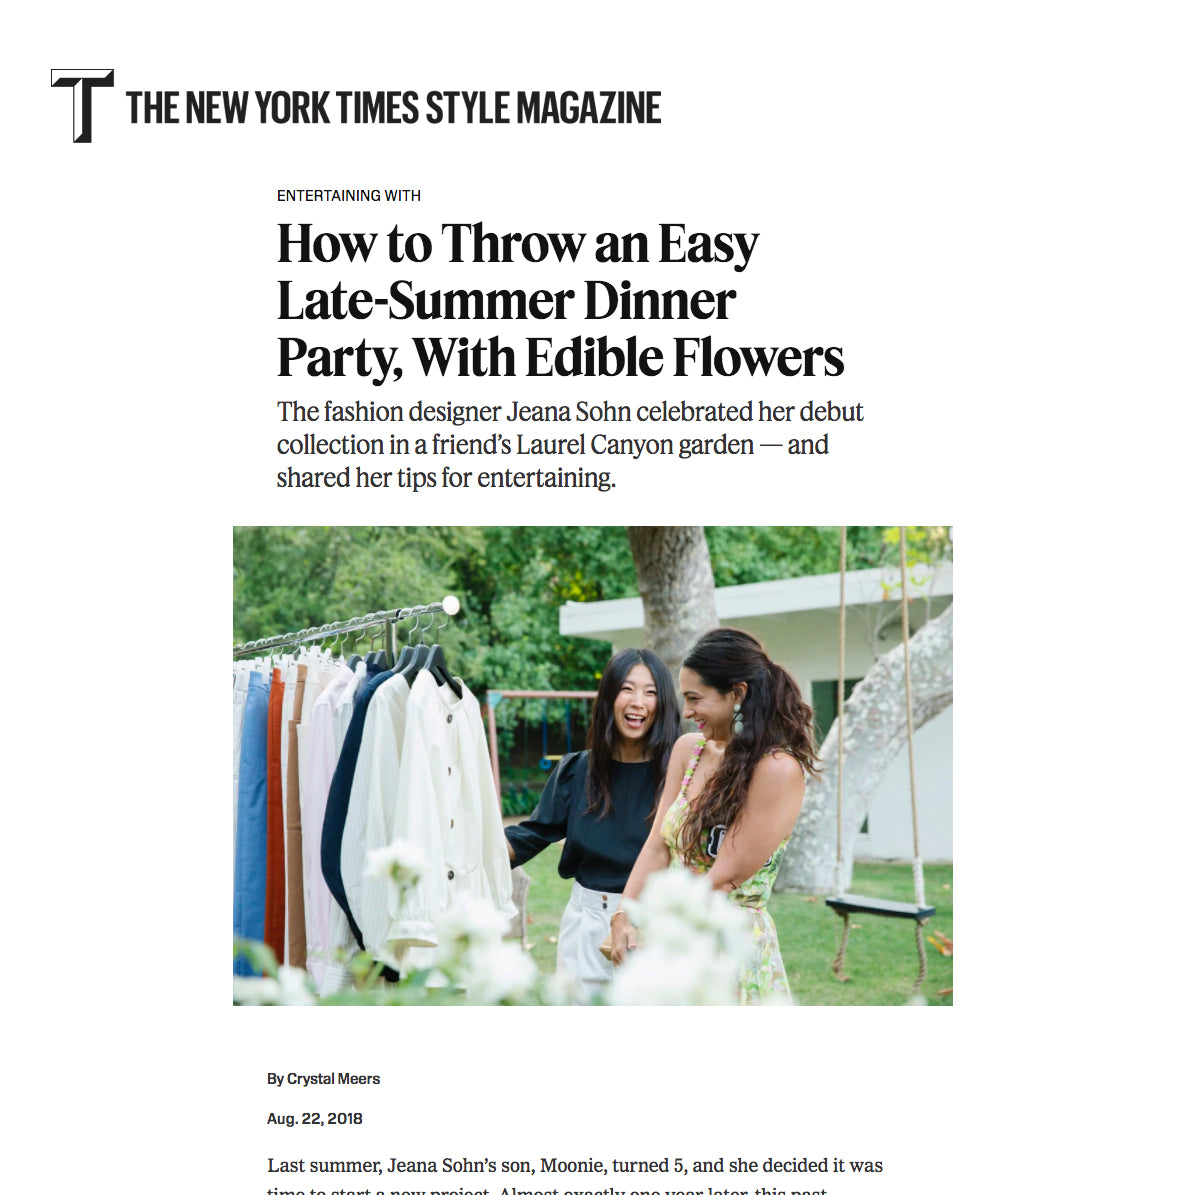 T Magazine - How to Throw an Easy Late-Summer Dinner Party, With Edible Flowers